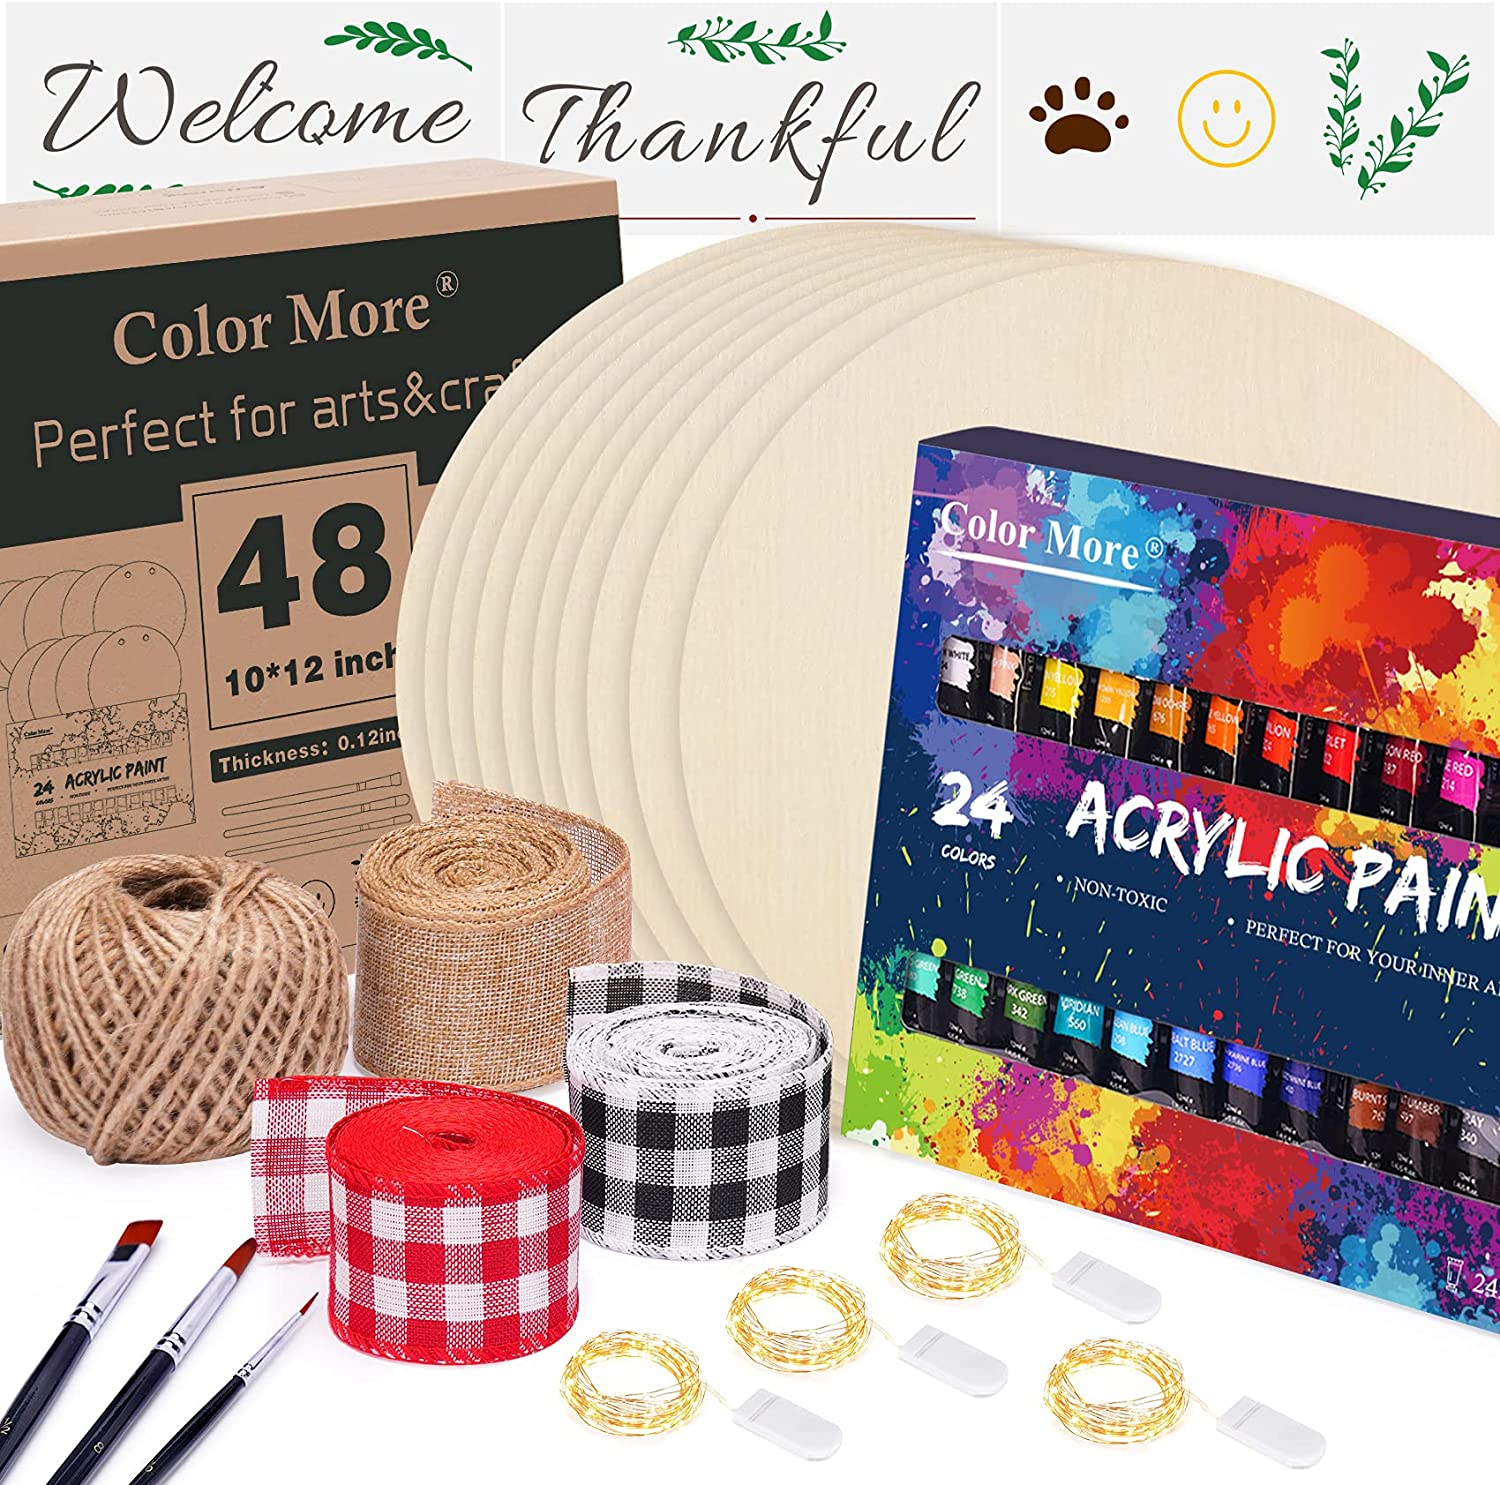 10 Pack 12 Inch Unfinished Louisville-Jefferson County online shopping Mall Wood Circles with Acrylic Paints 3 24